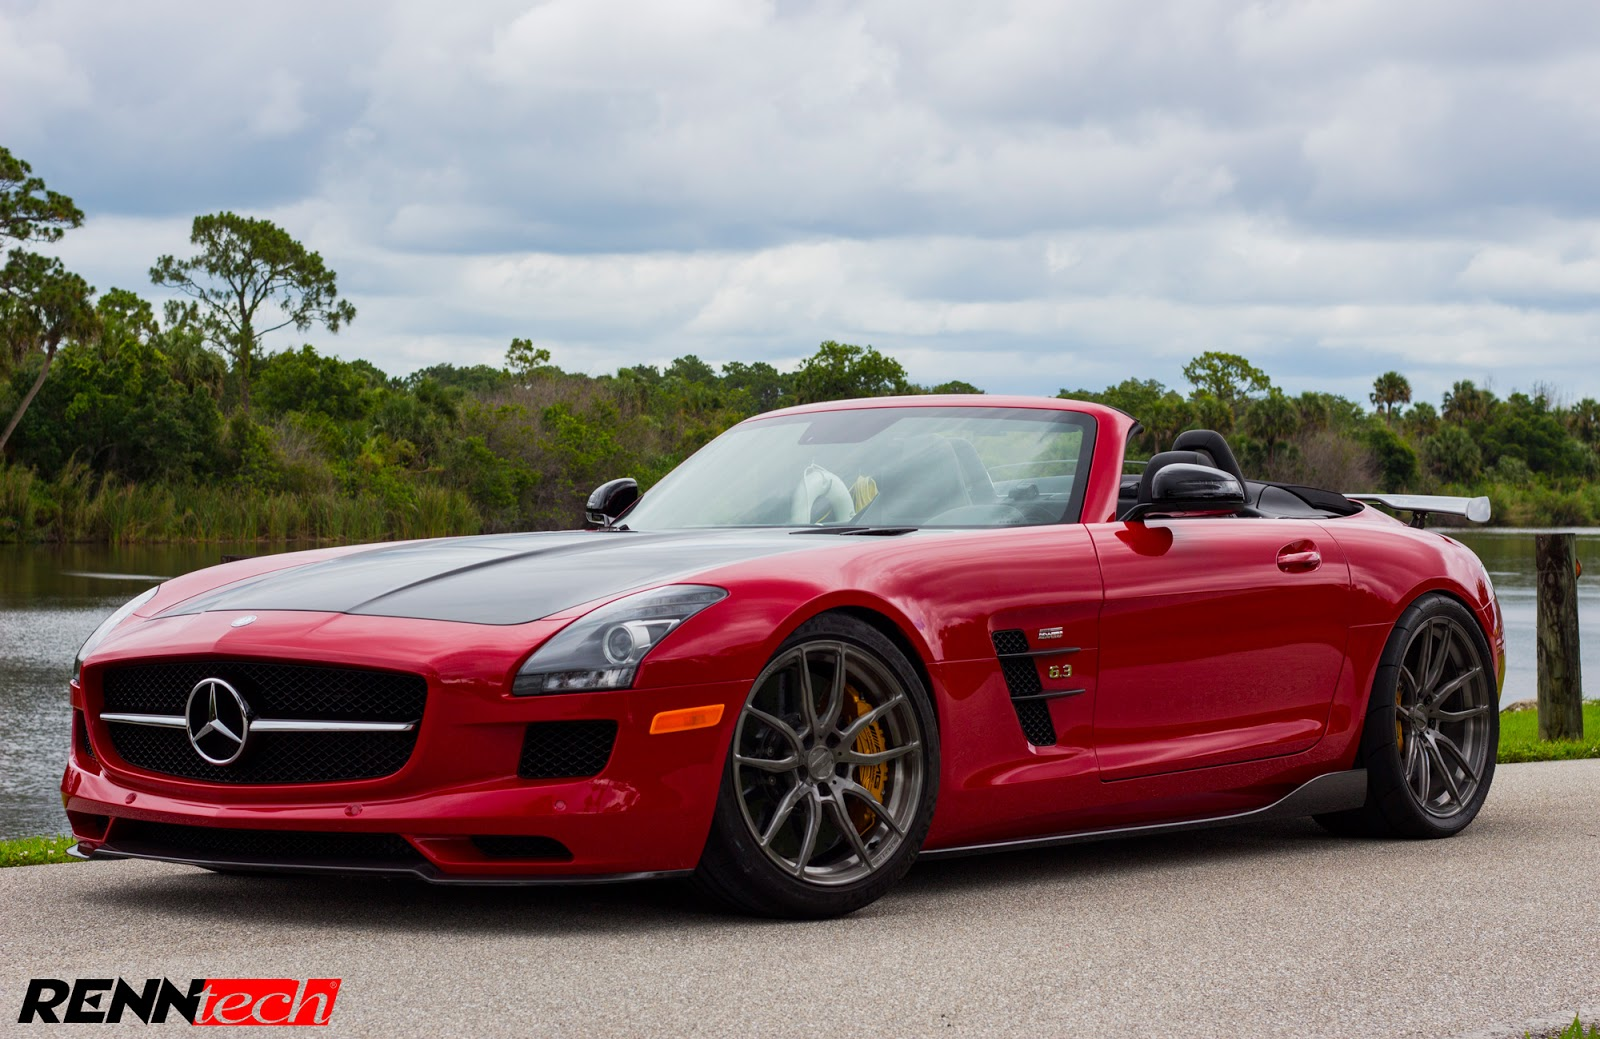 renntech news renntech sls amg gt final edition roadster. Black Bedroom Furniture Sets. Home Design Ideas